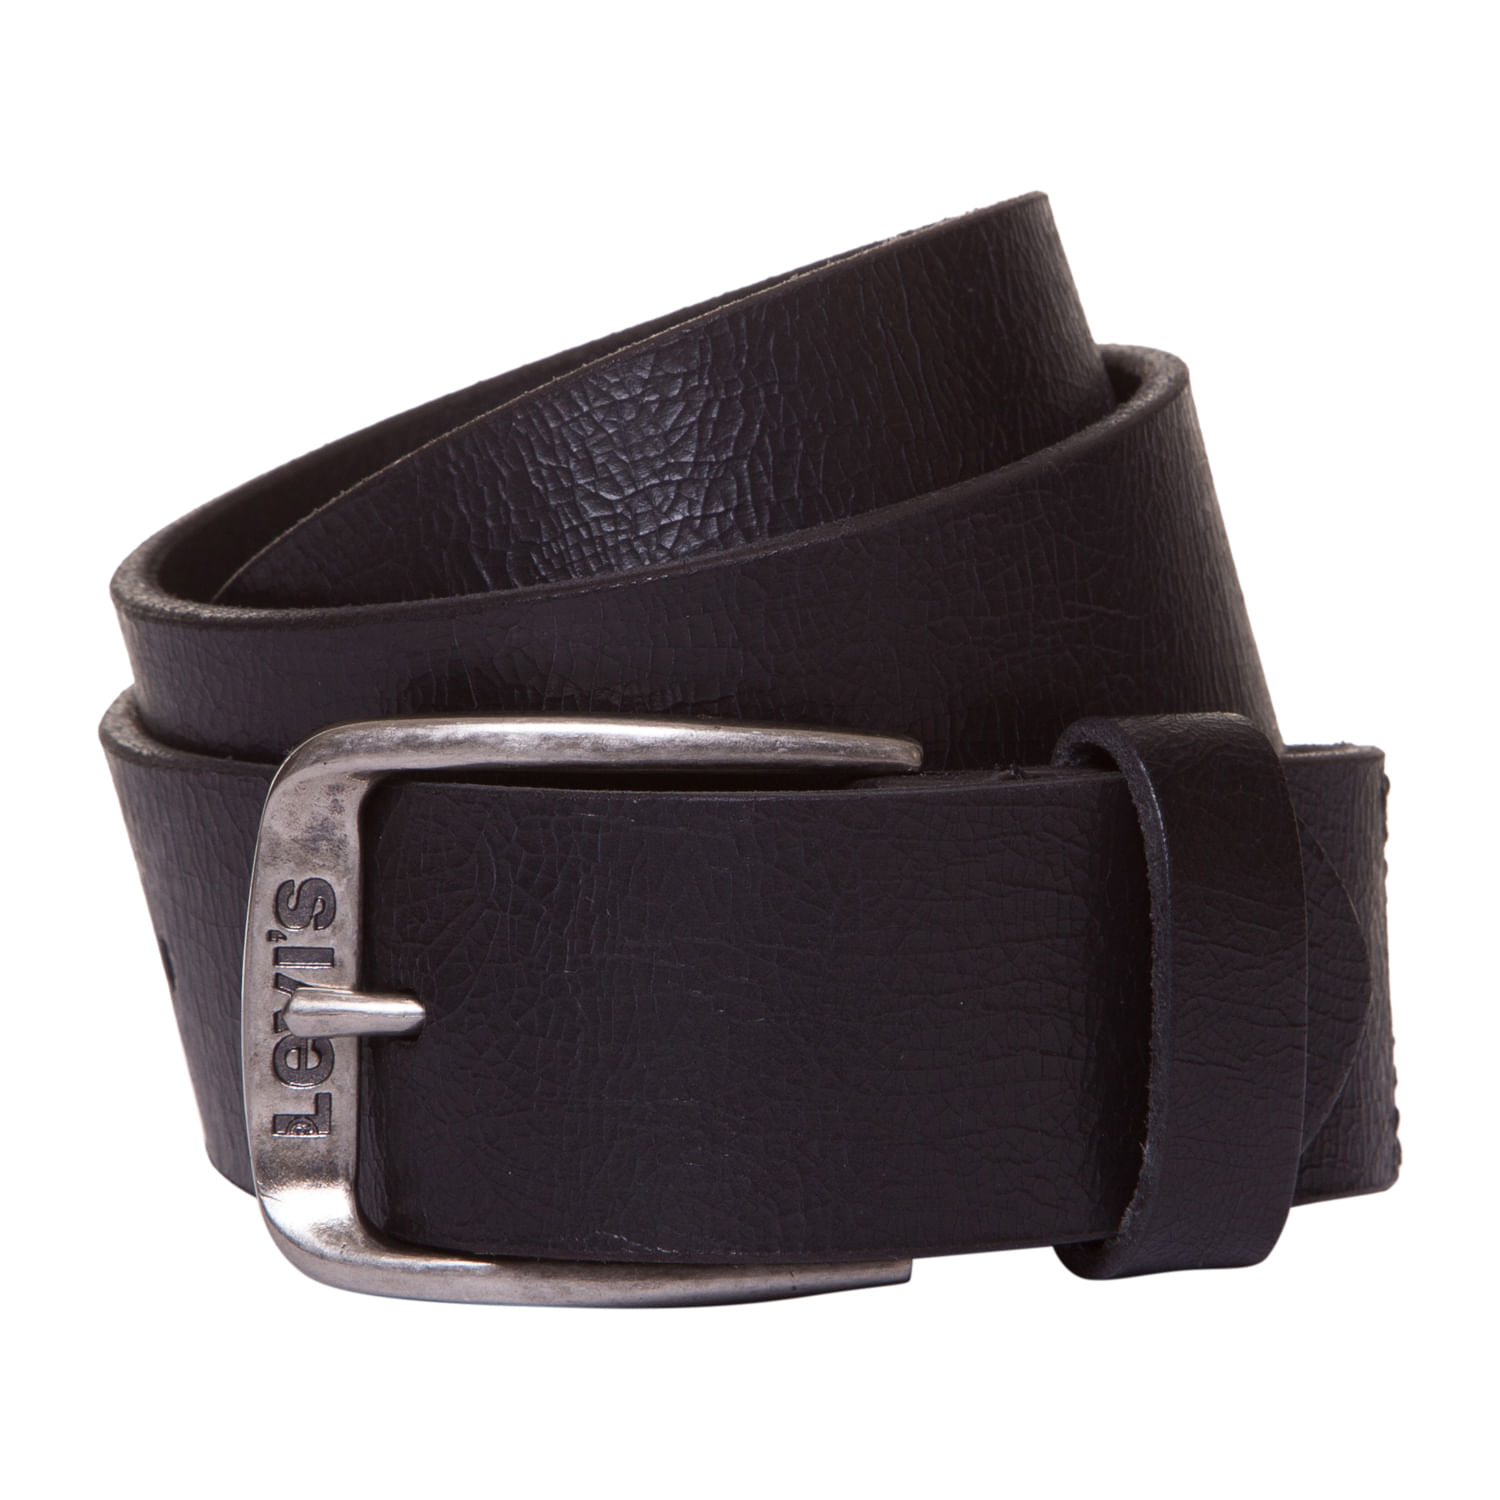 Cinto Levis Classic Top Logo Buckle Masculino - lojalevis 0f3beee9075